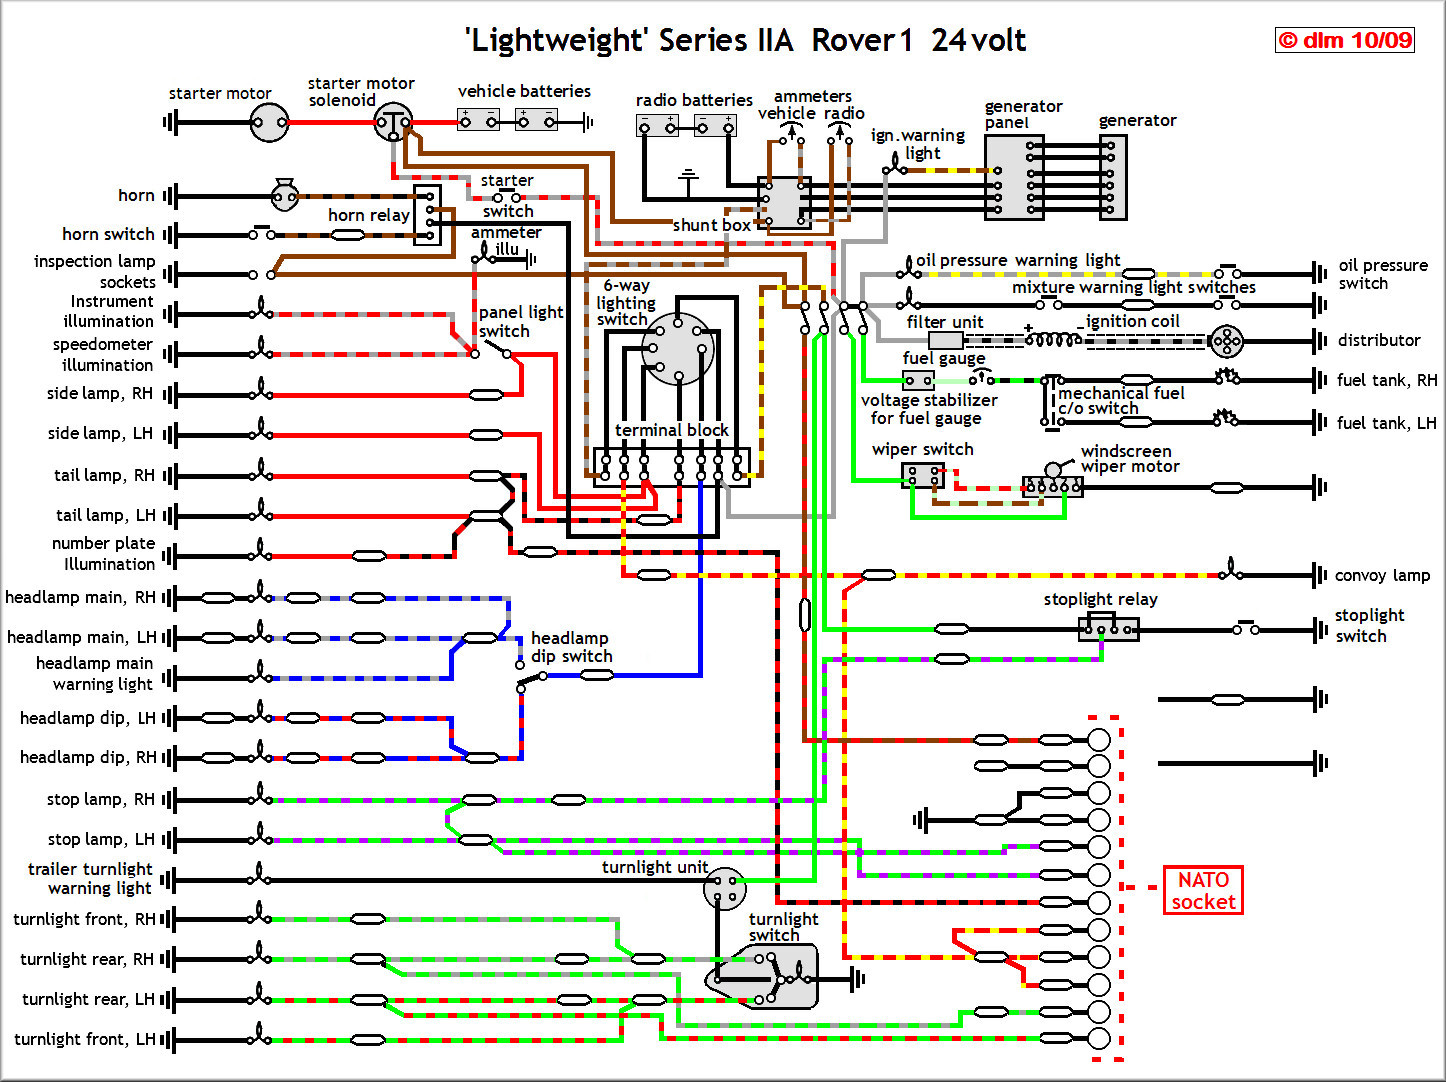 Land Rover 24v Wiring Diagram List Of Schematic Circuit Diagram \u2022 2001  Land Rover Discovery Fuse Box Diagram 2003 Land Rover Discovery Fuse Box  Diagram